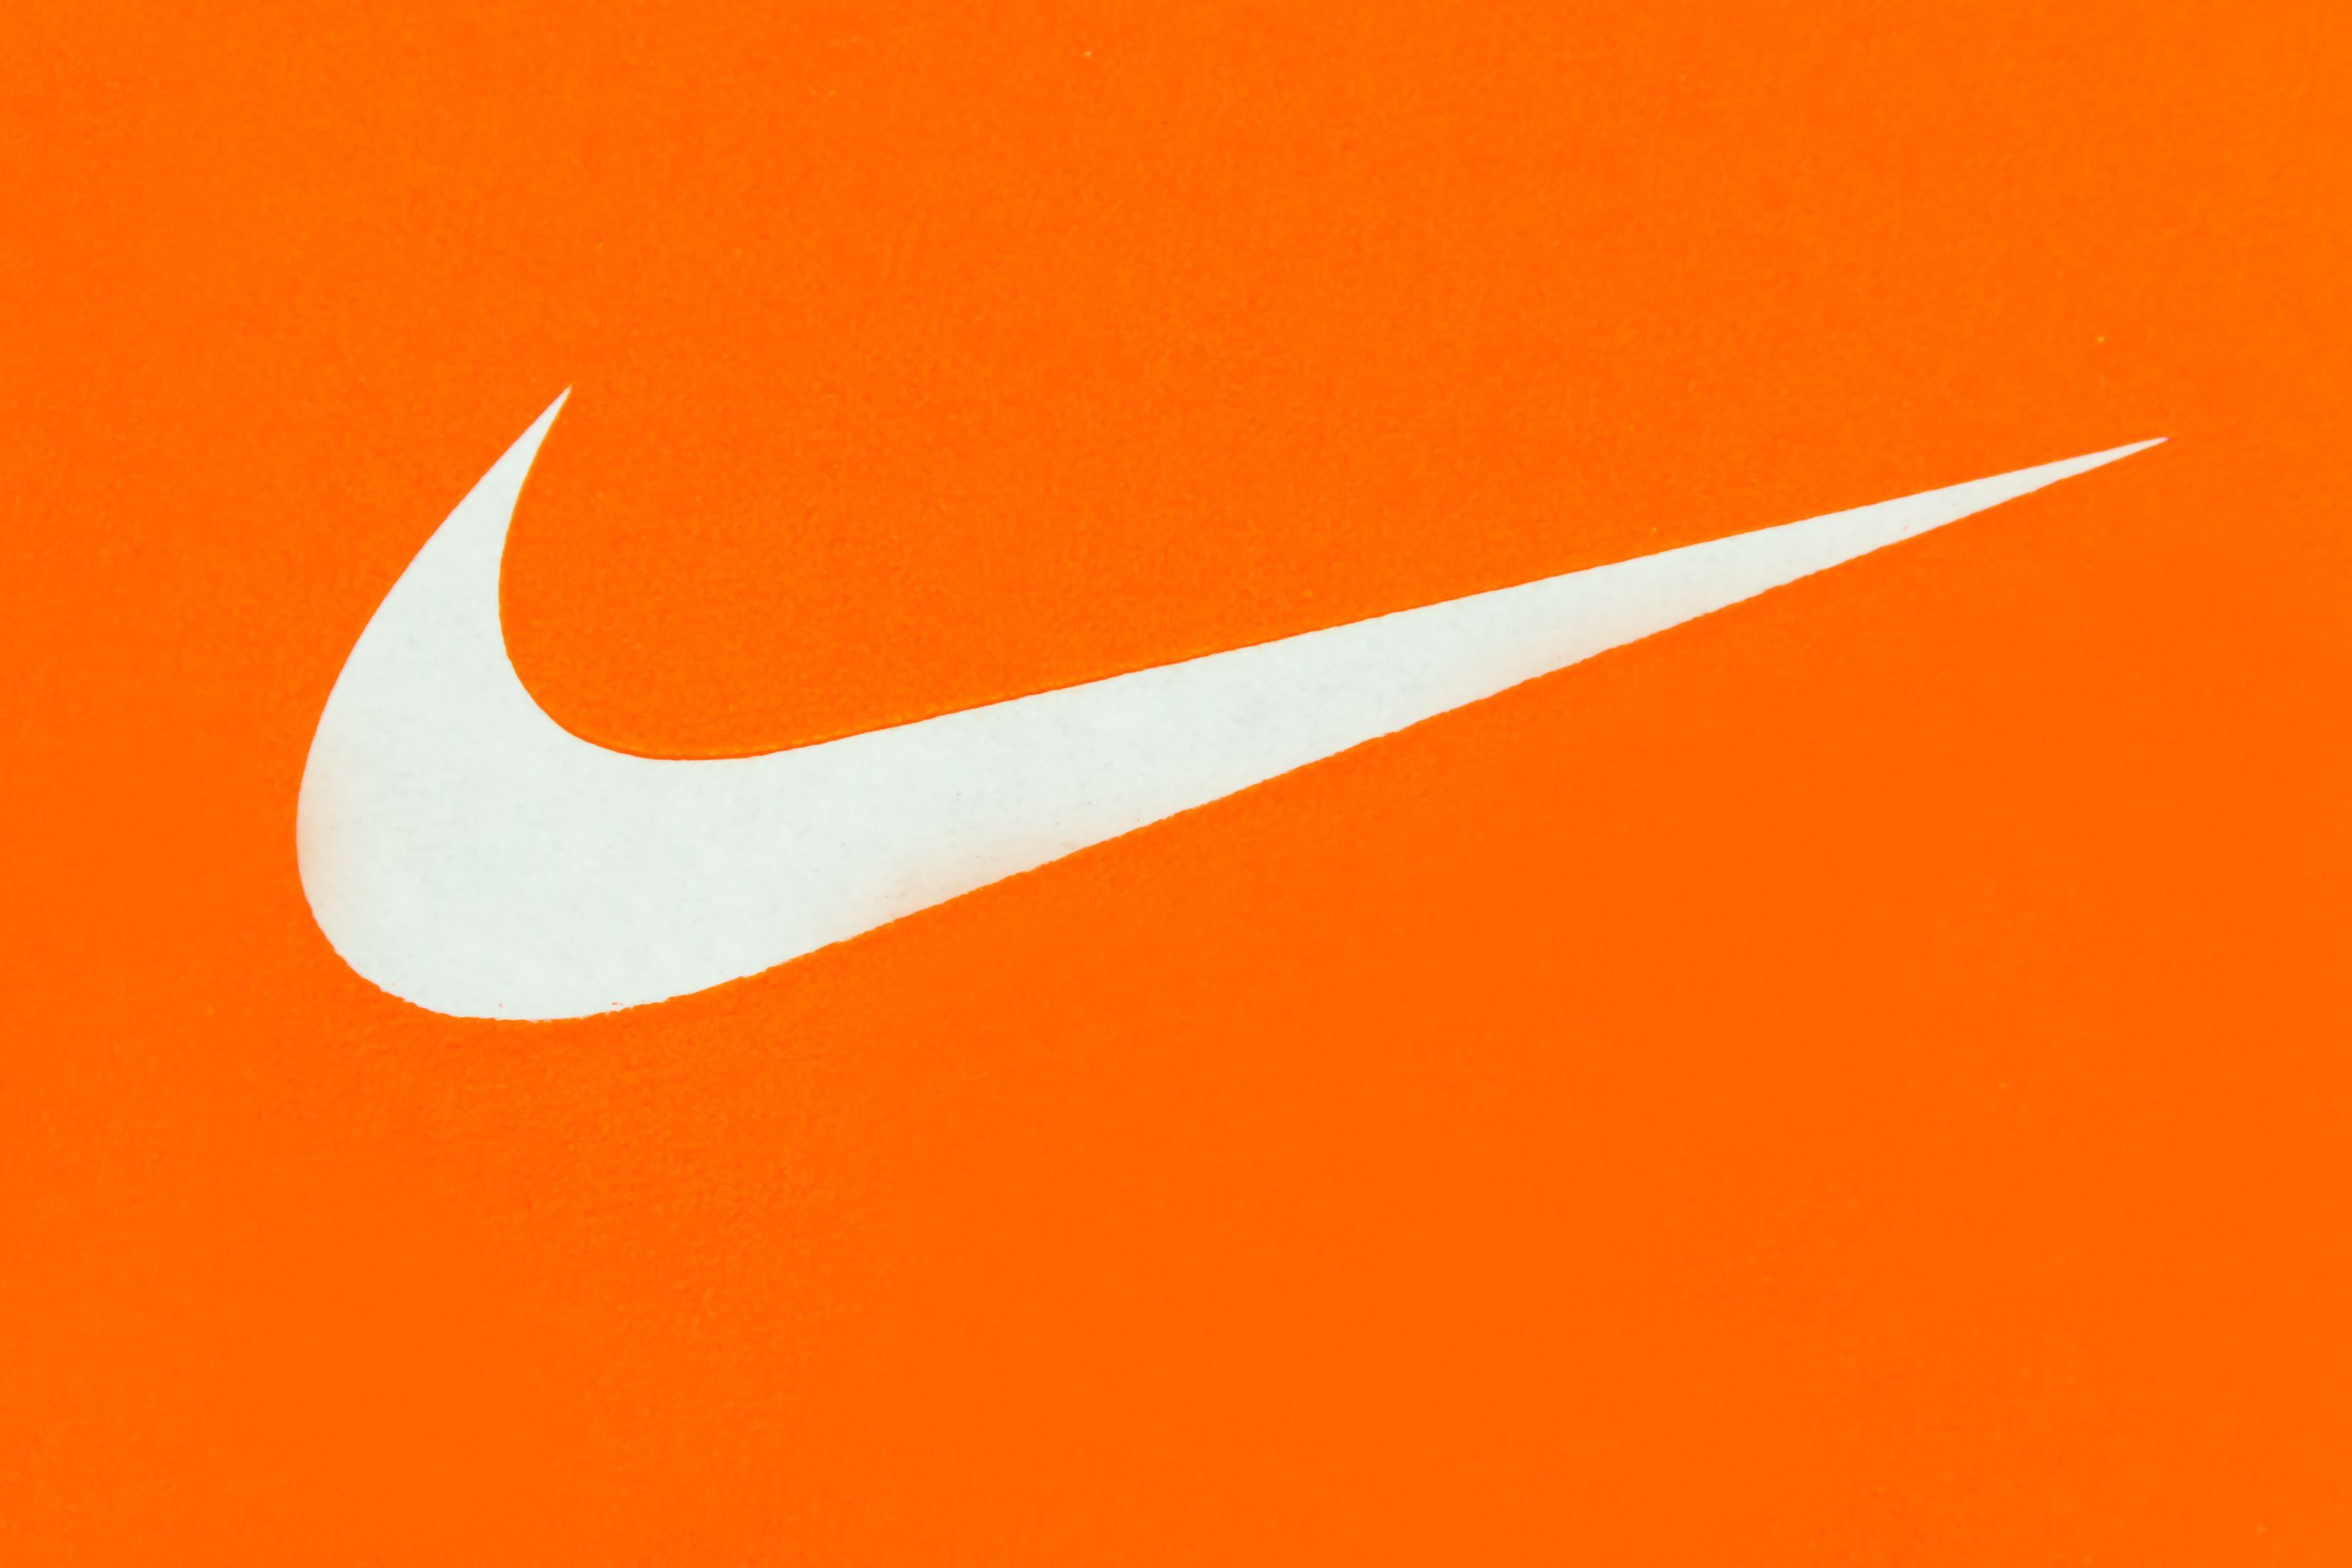 Nike Logo - Basketball: Nike Swoosh to Appear on NBA Uniforms | Time